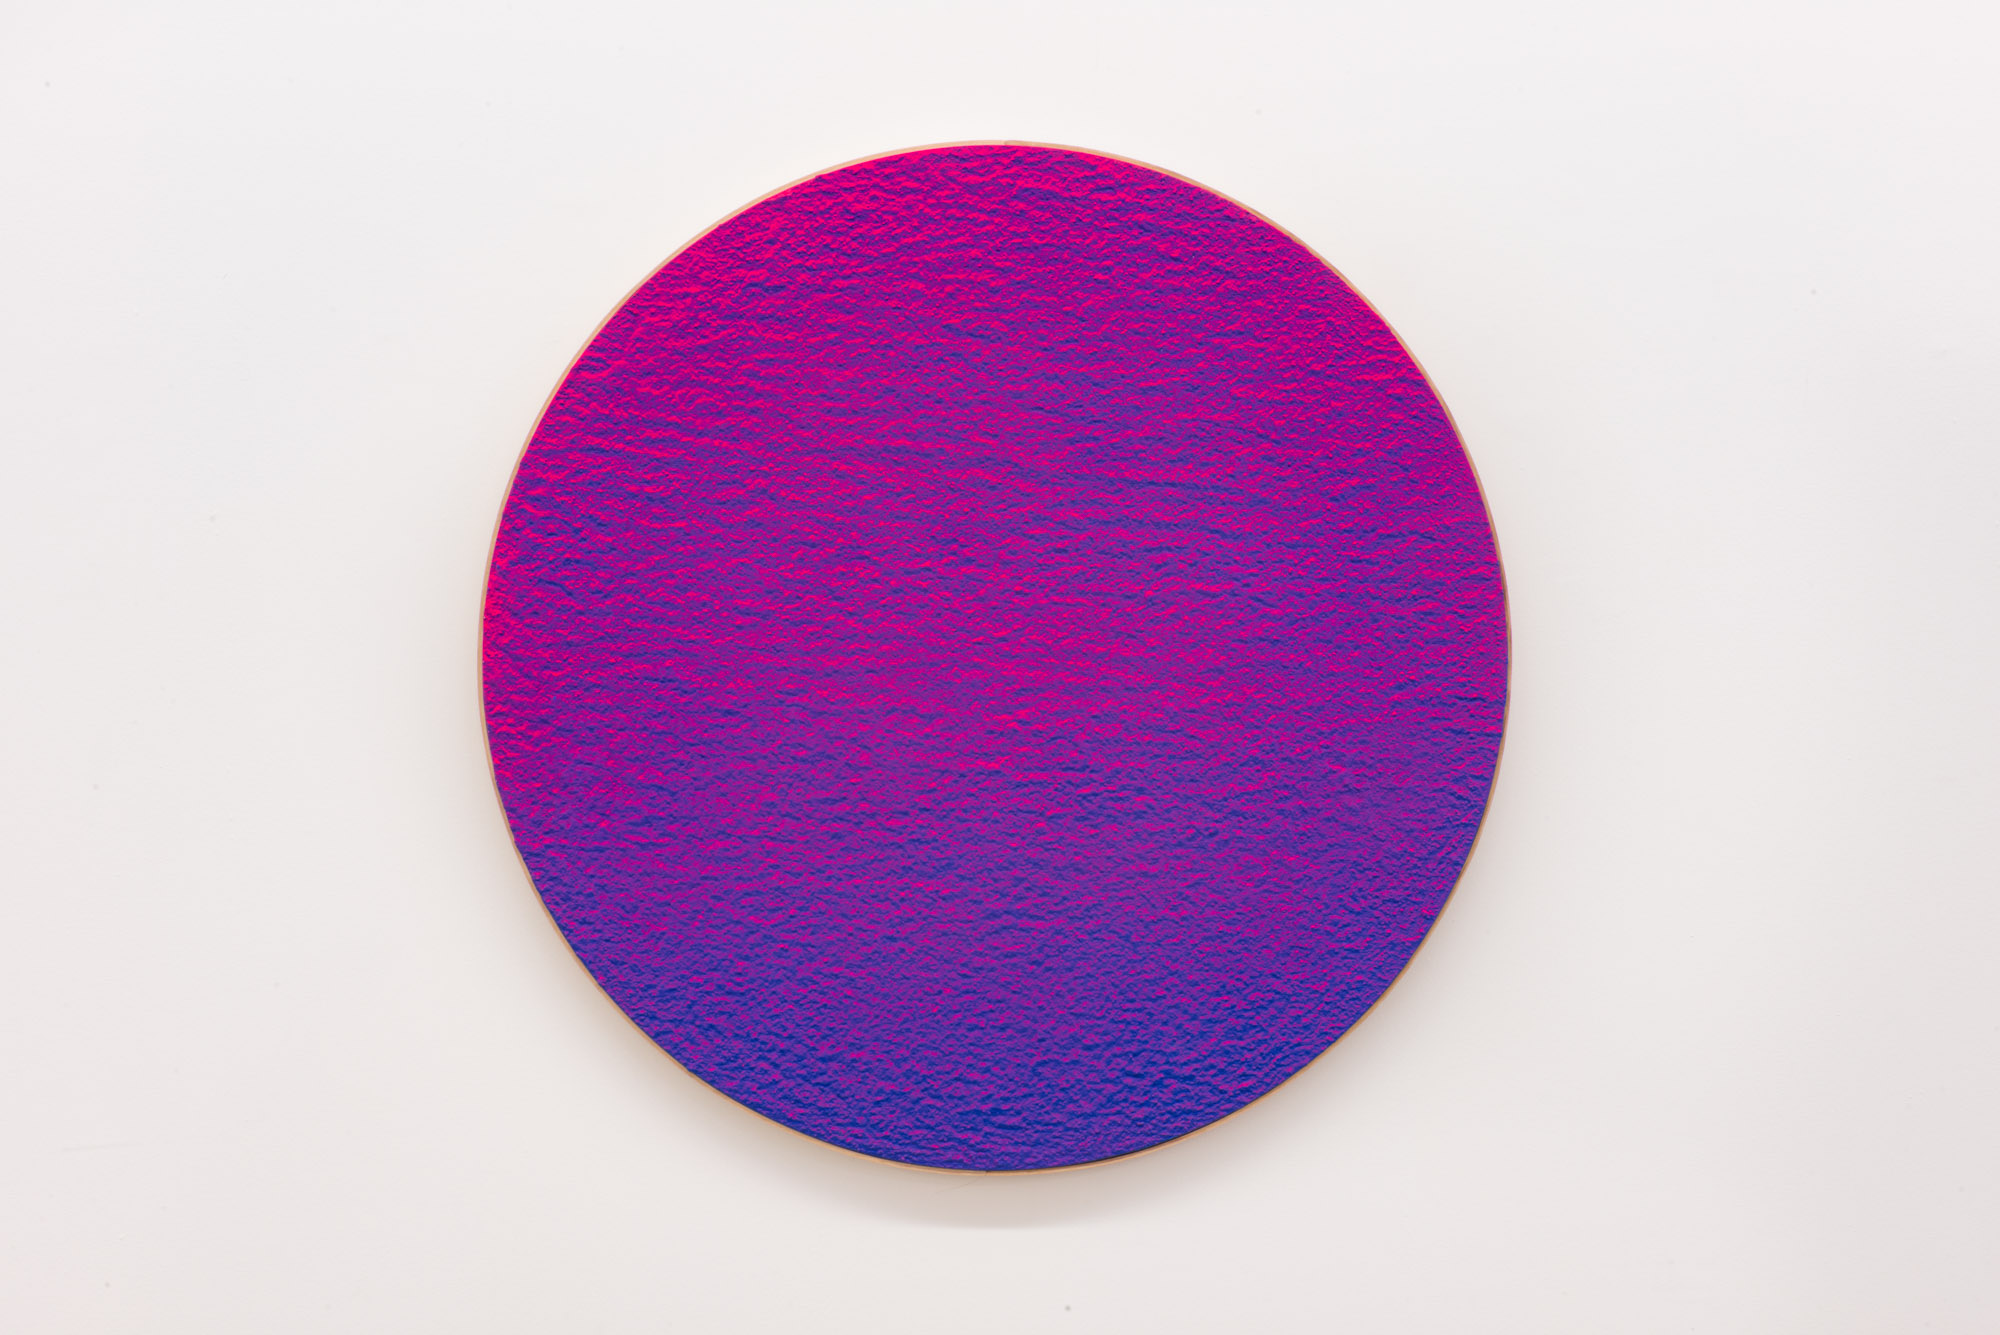 """Pierre Julien,  In the Deepest Oceans  - C001, 2018, stucco, acrylic and spray paint on wood panel, 30"""" diameter (76 cm)"""